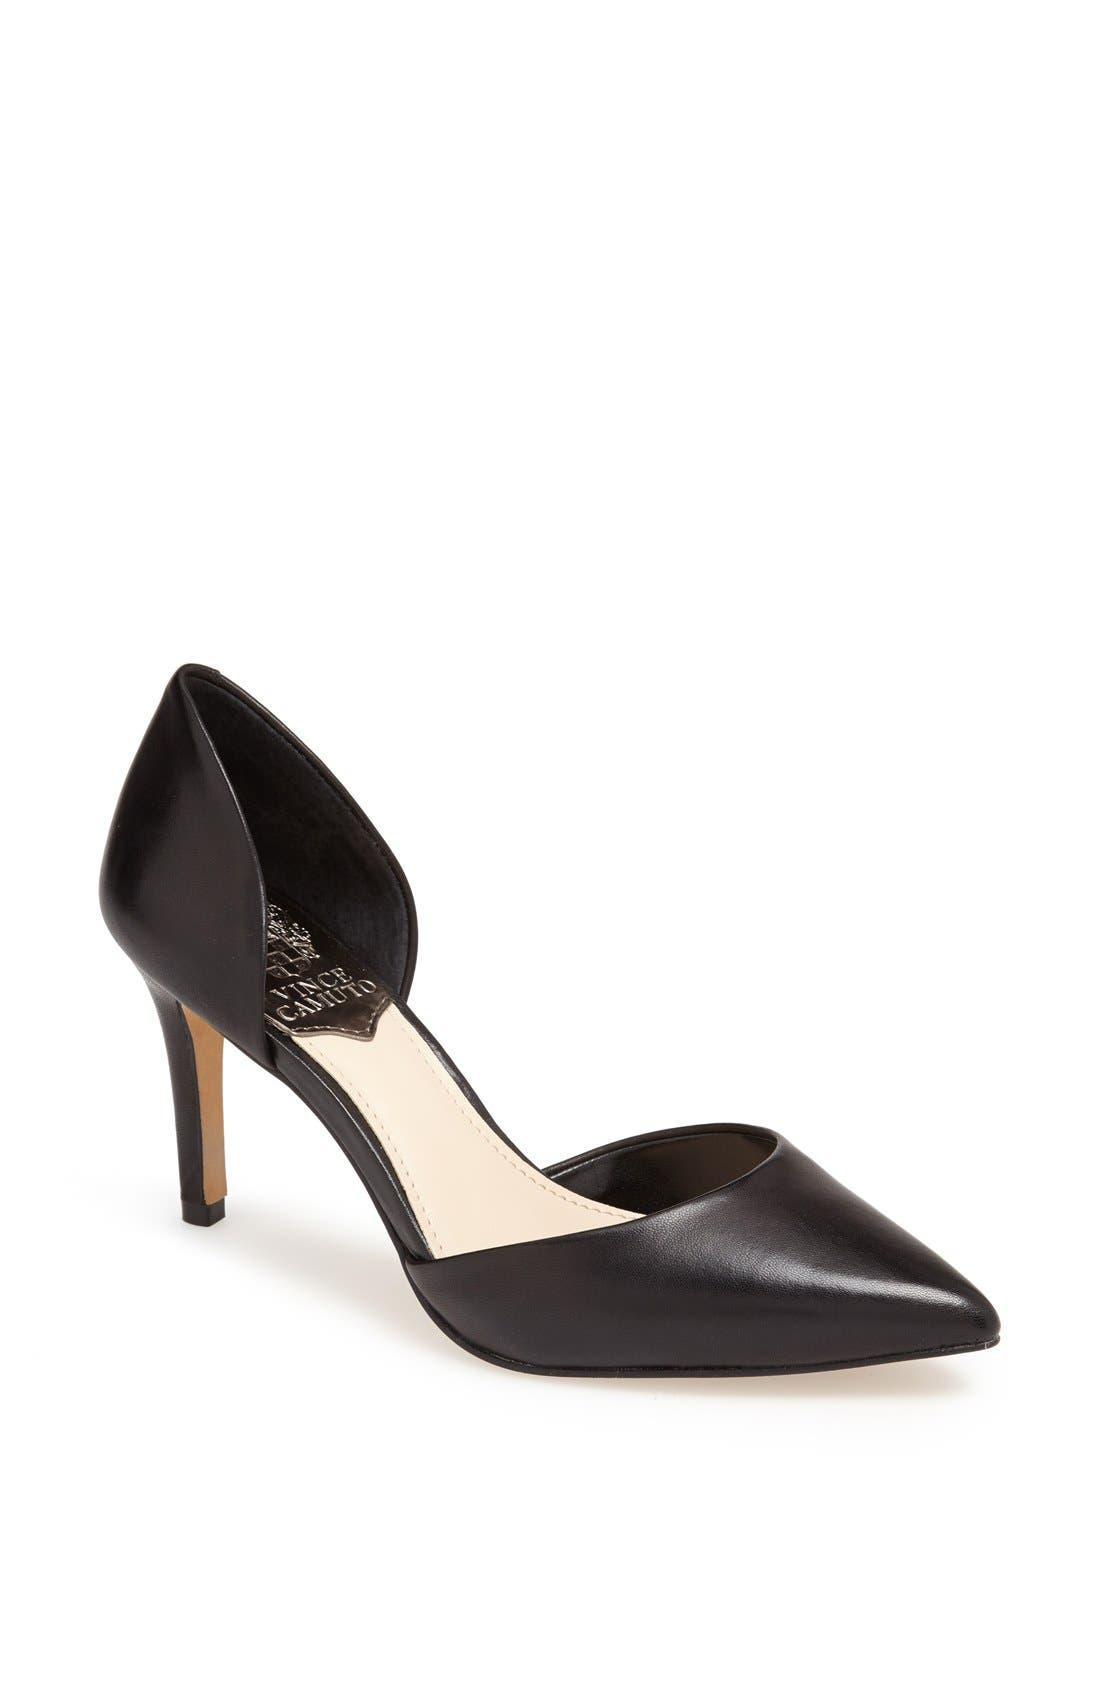 'Raccia' Pointy Toe d'Orsay Pump,                         Main,                         color, 001